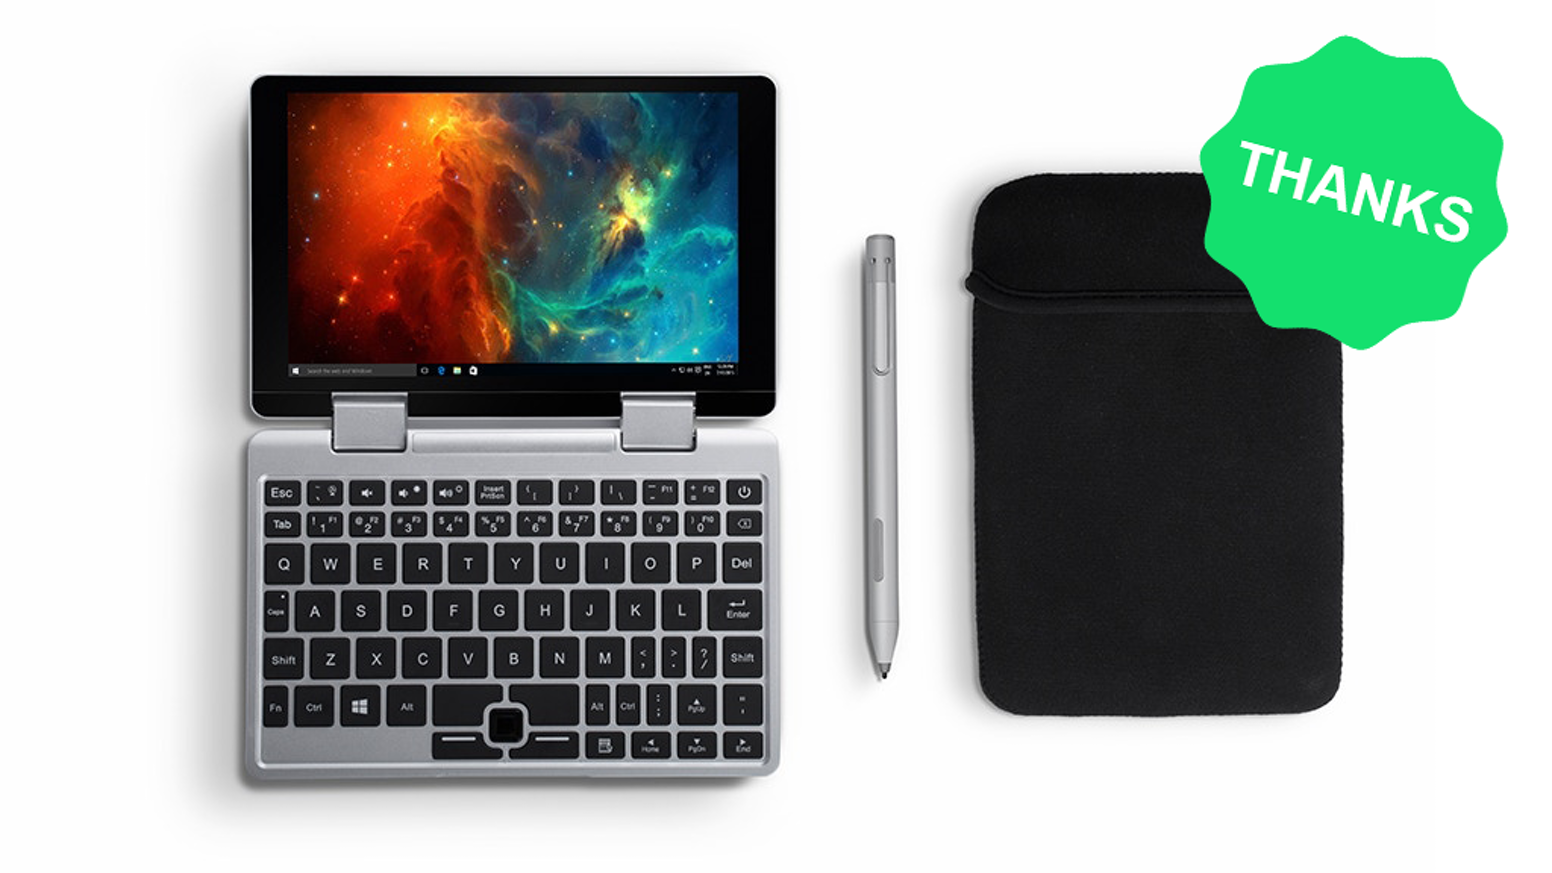 Tiny in size yet big in power. Falcon is a super portable laptop and tablet designed for work and play while you are on-the-go.